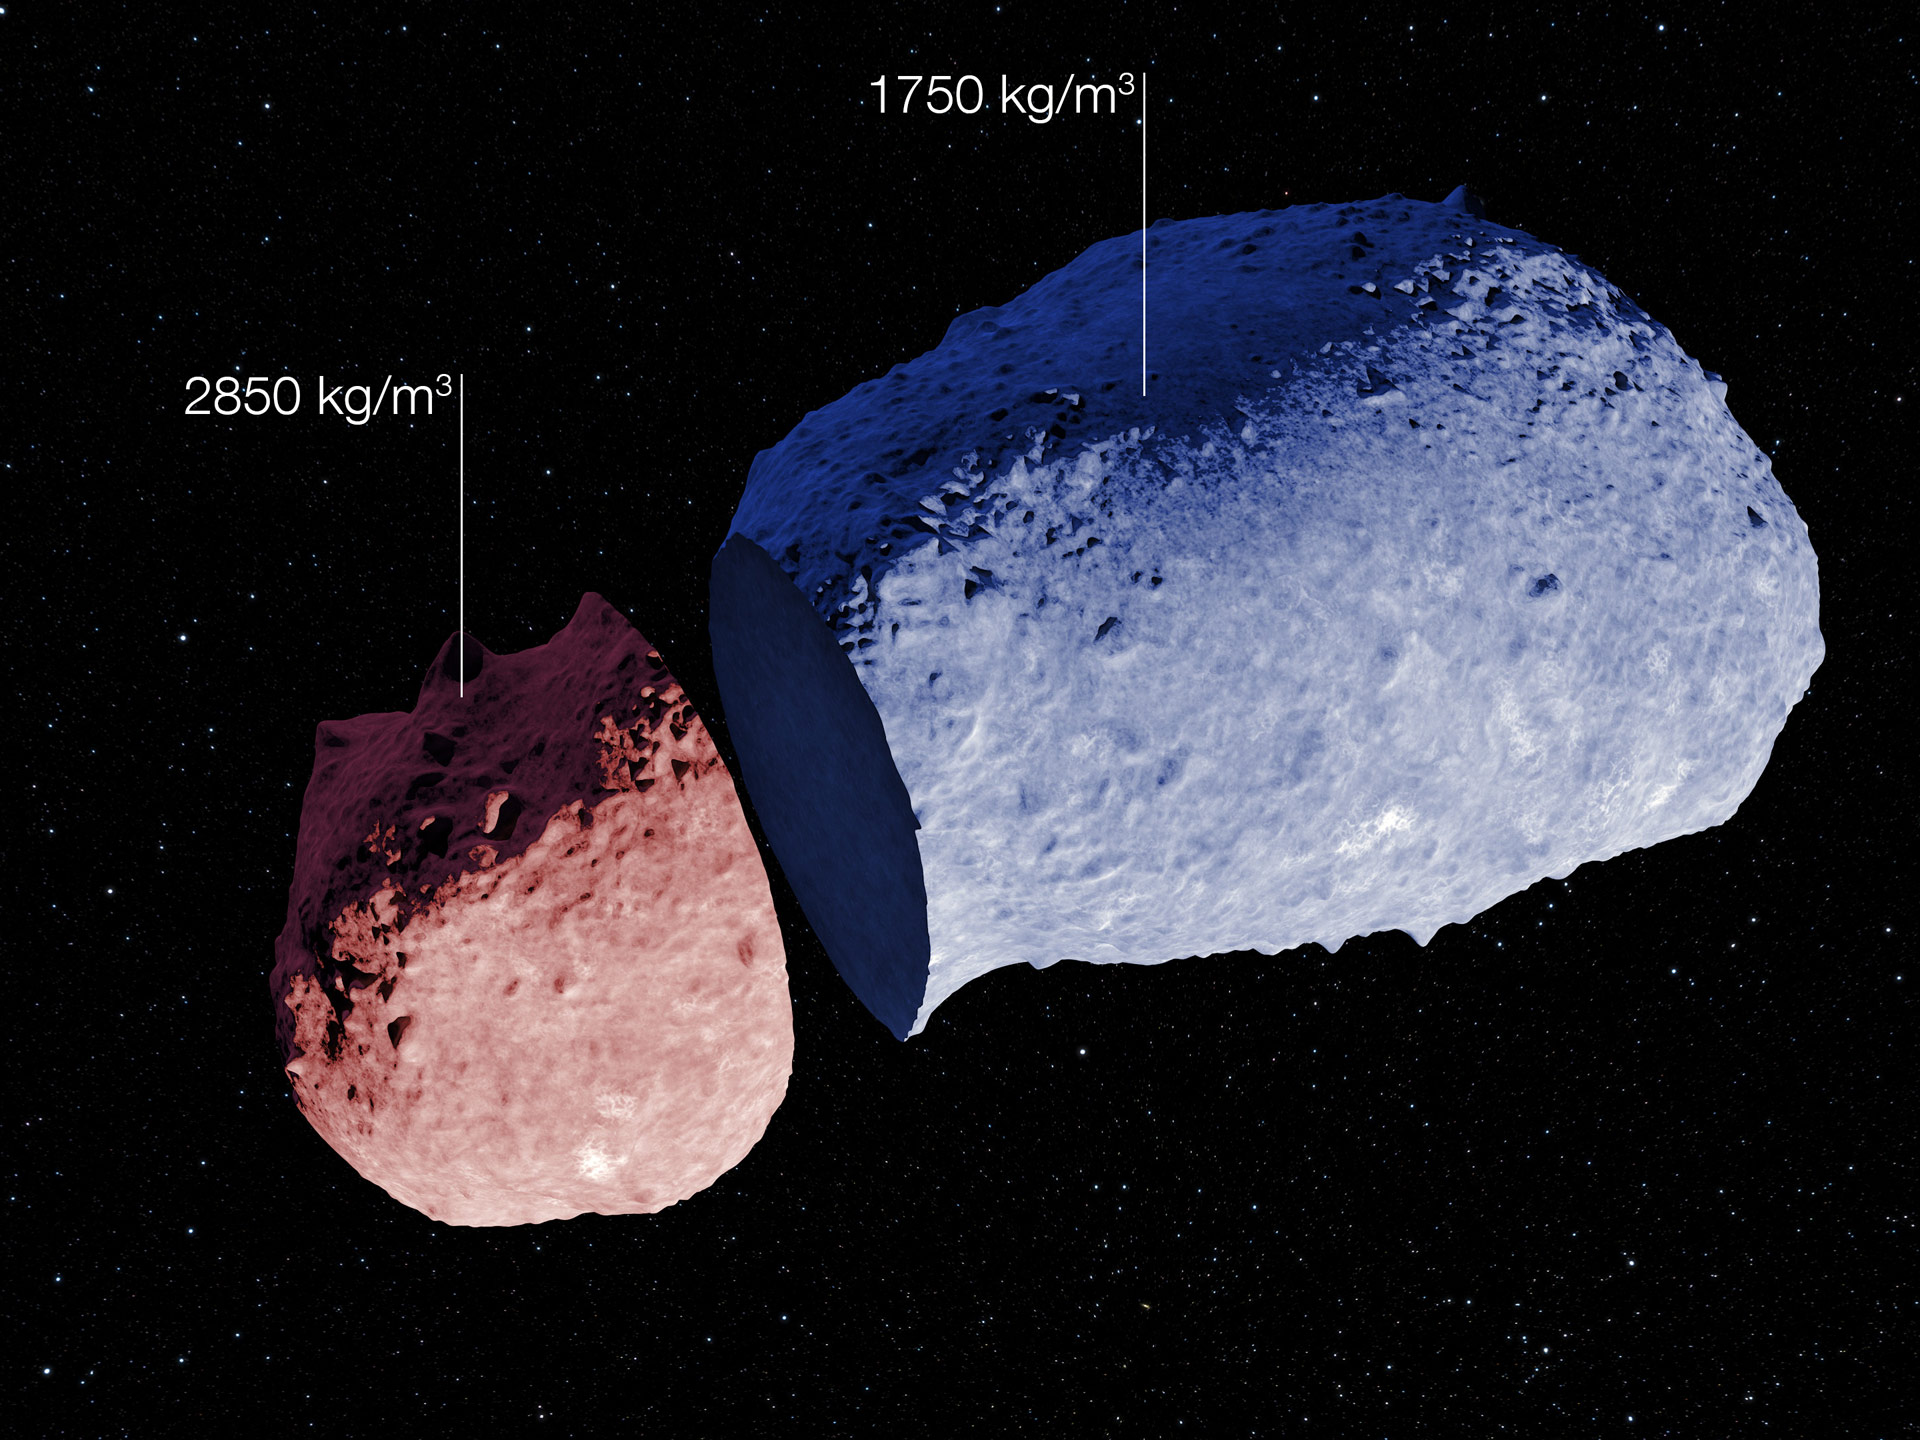 The First Evidence That Asteroids Can Have A Highly Varied